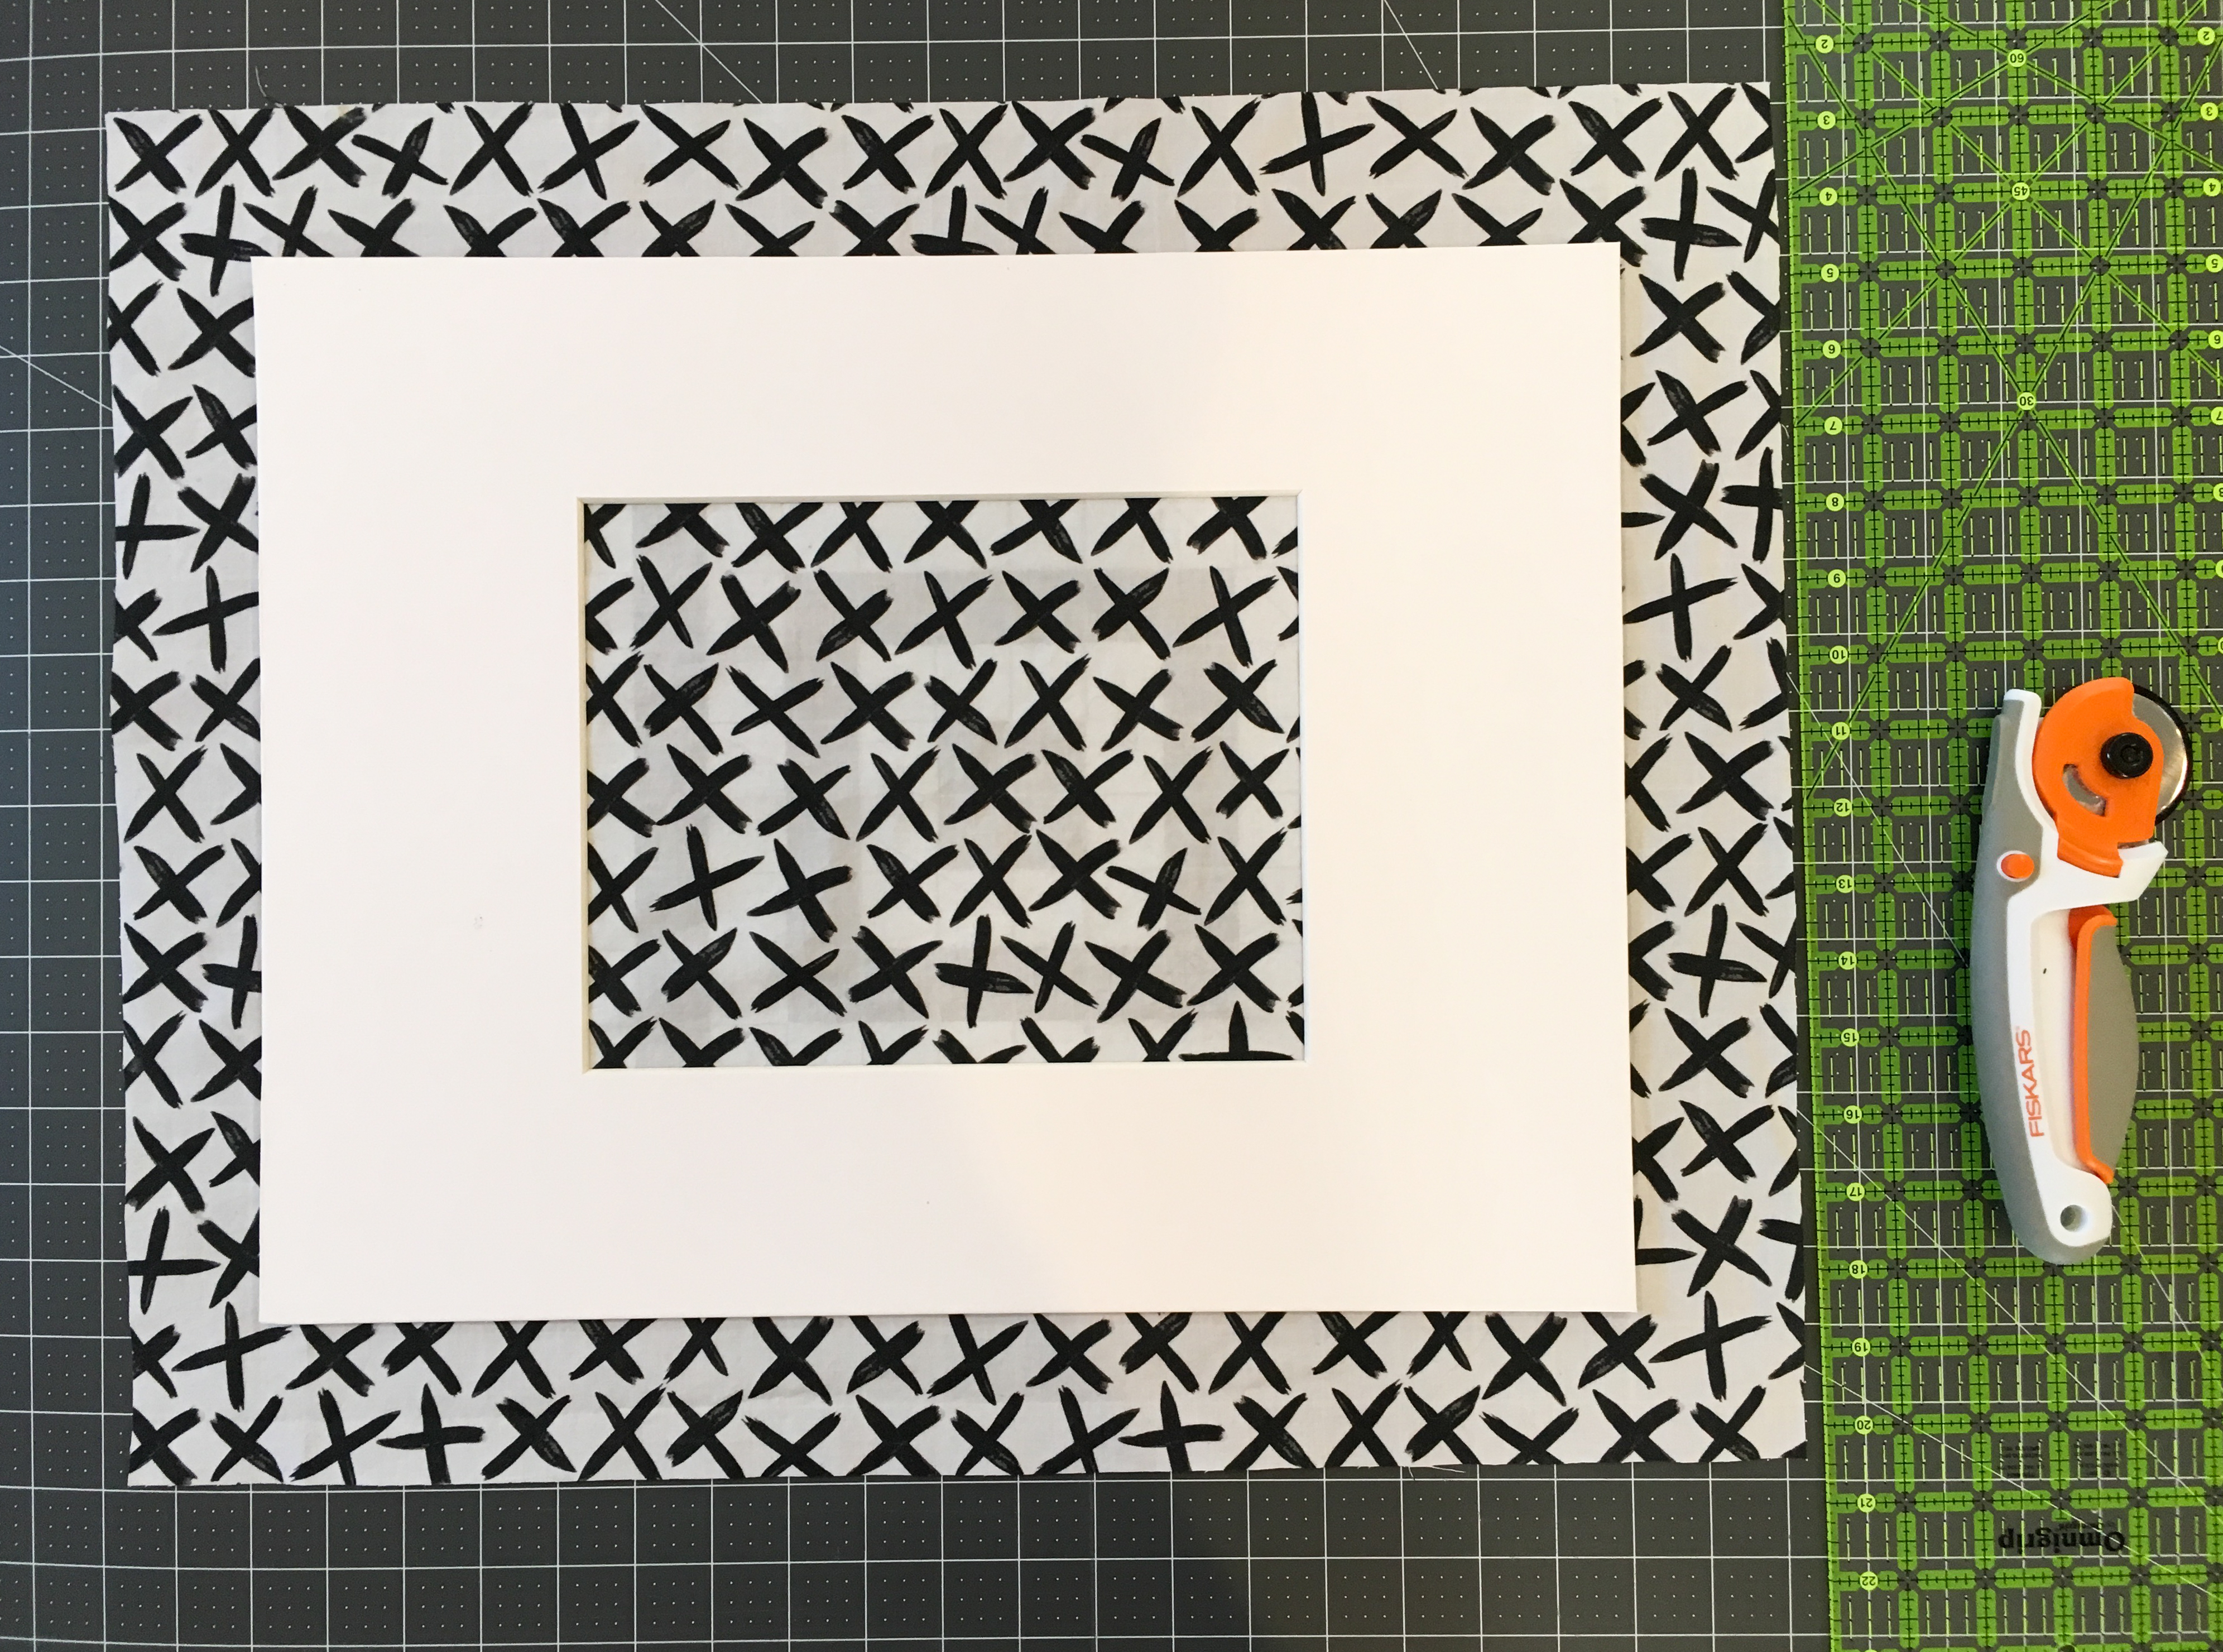 Diy custom fabric mats for framed photos valerie kiser design start out by cutting your fabric allowing at least 15 2 inches on each side to fold over mat then give a pass under your iron to smooth out any jeuxipadfo Choice Image